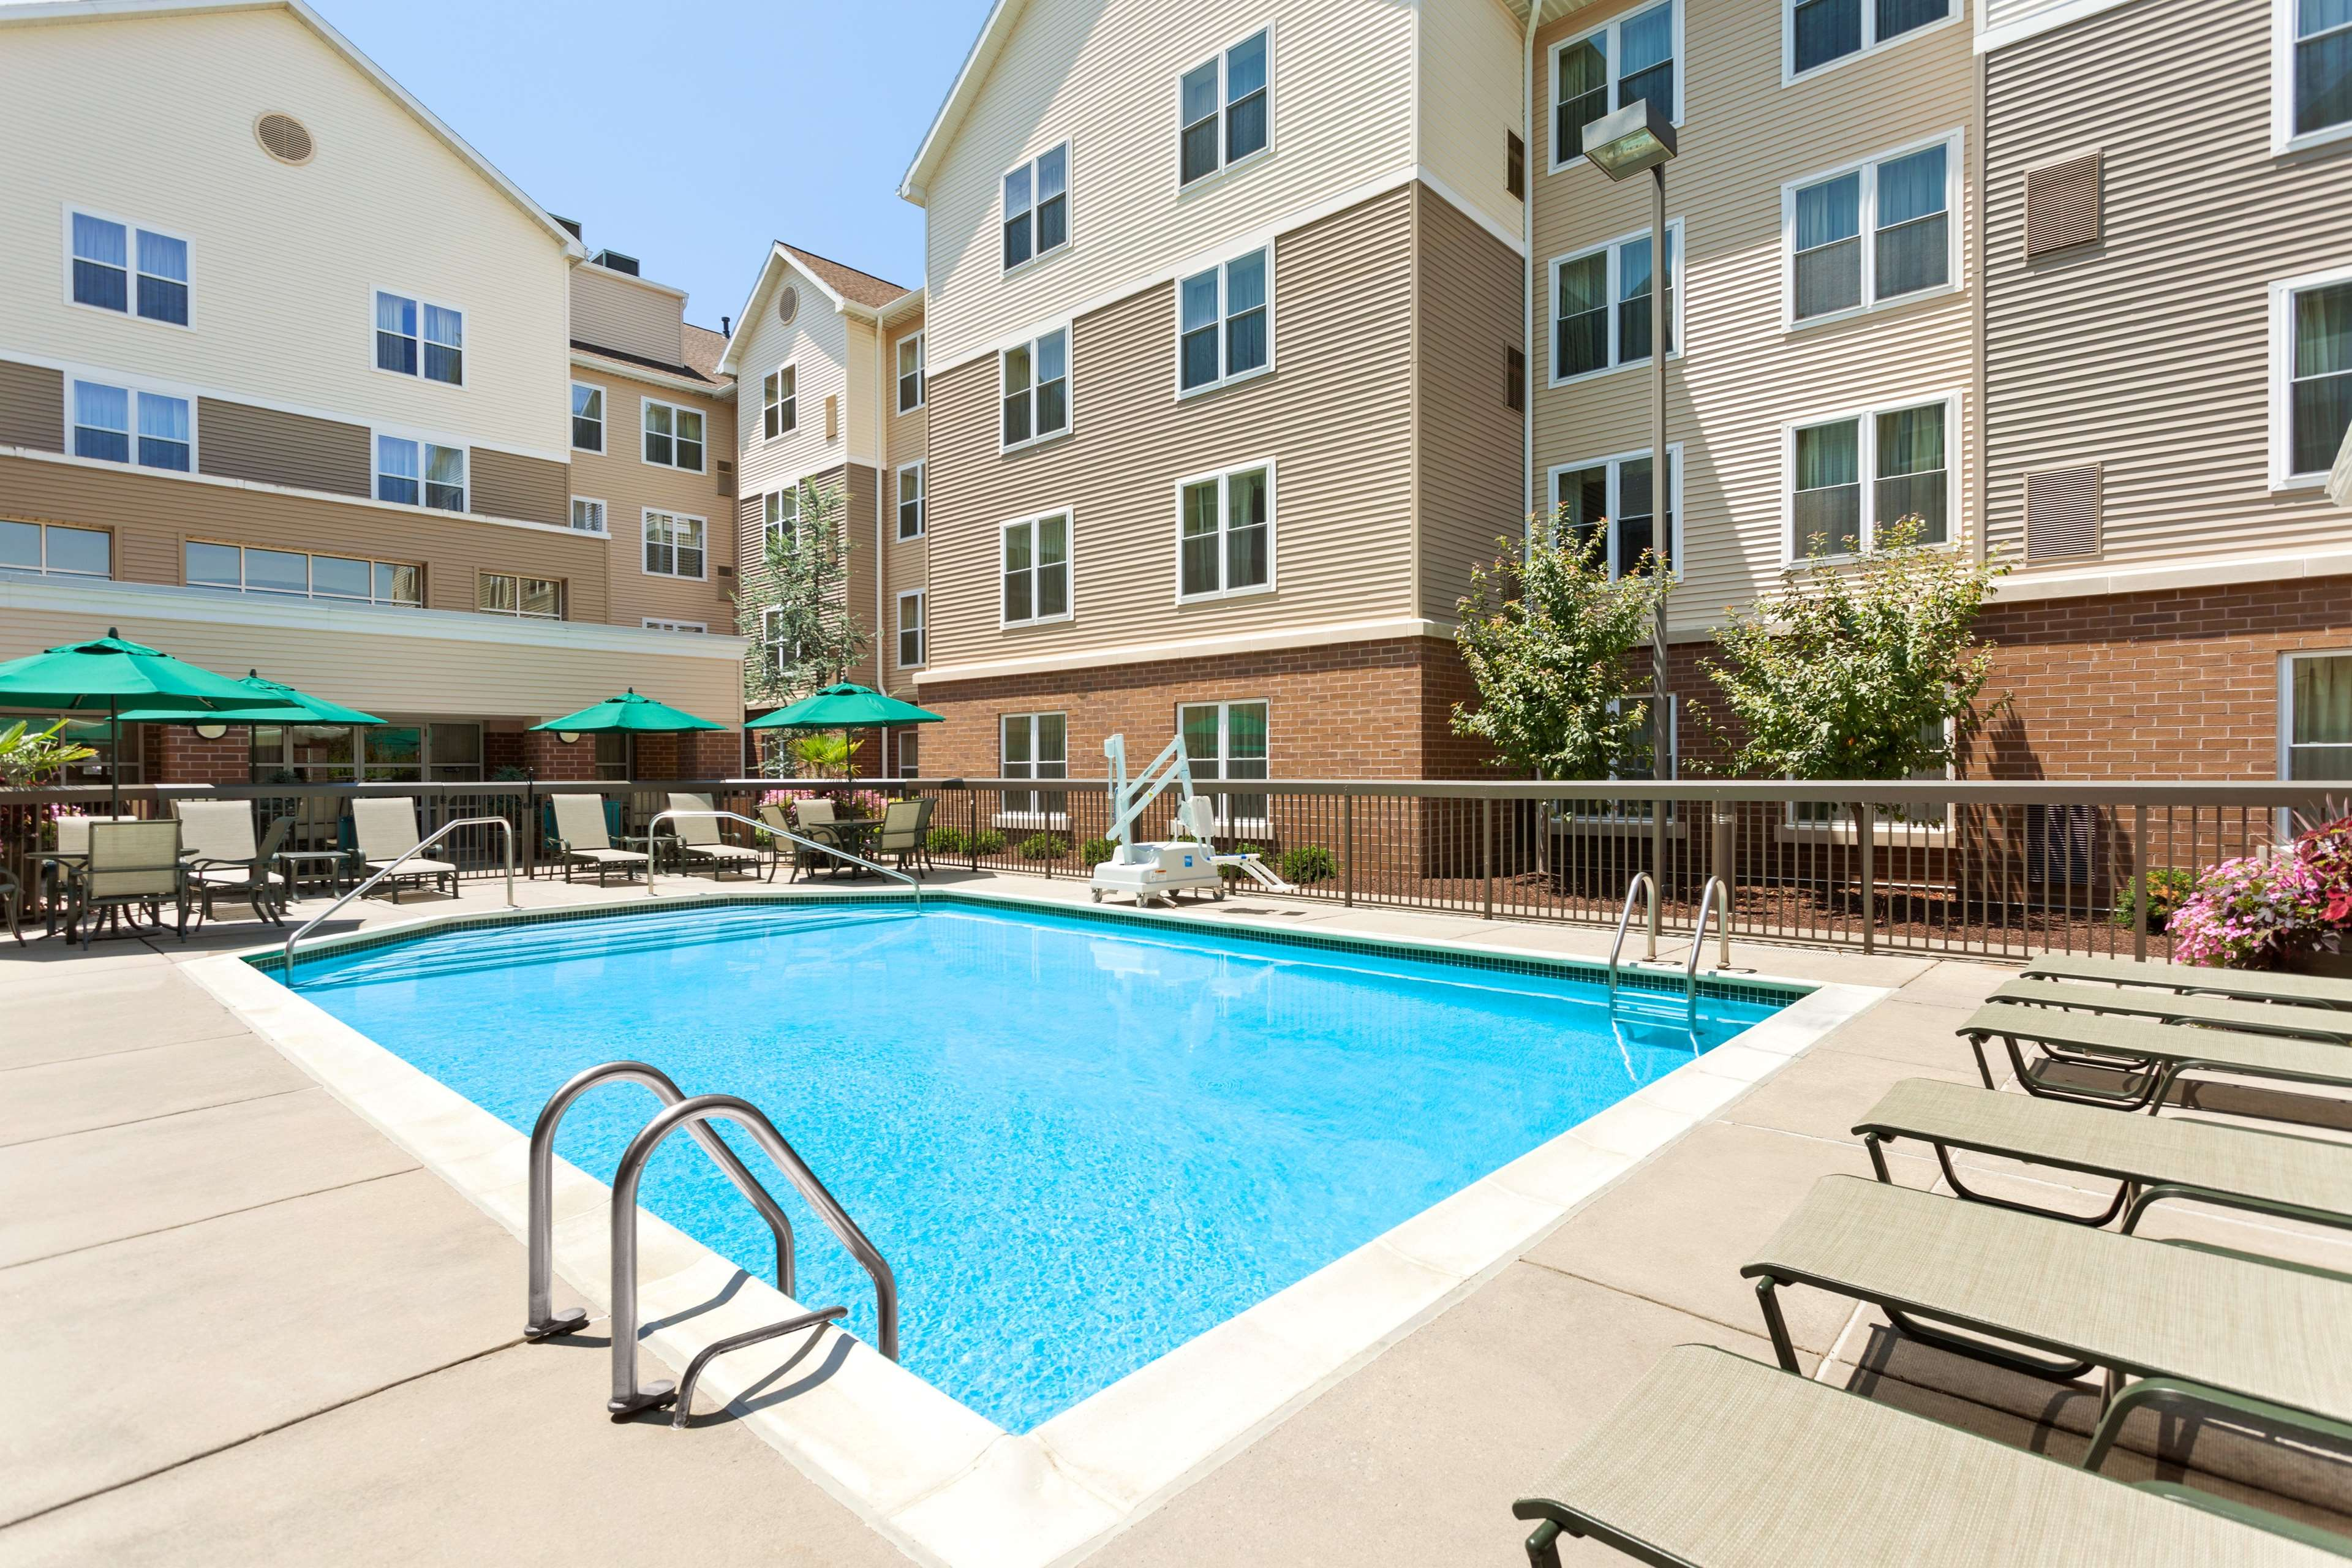 Homewood Suites by Hilton Reading image 5